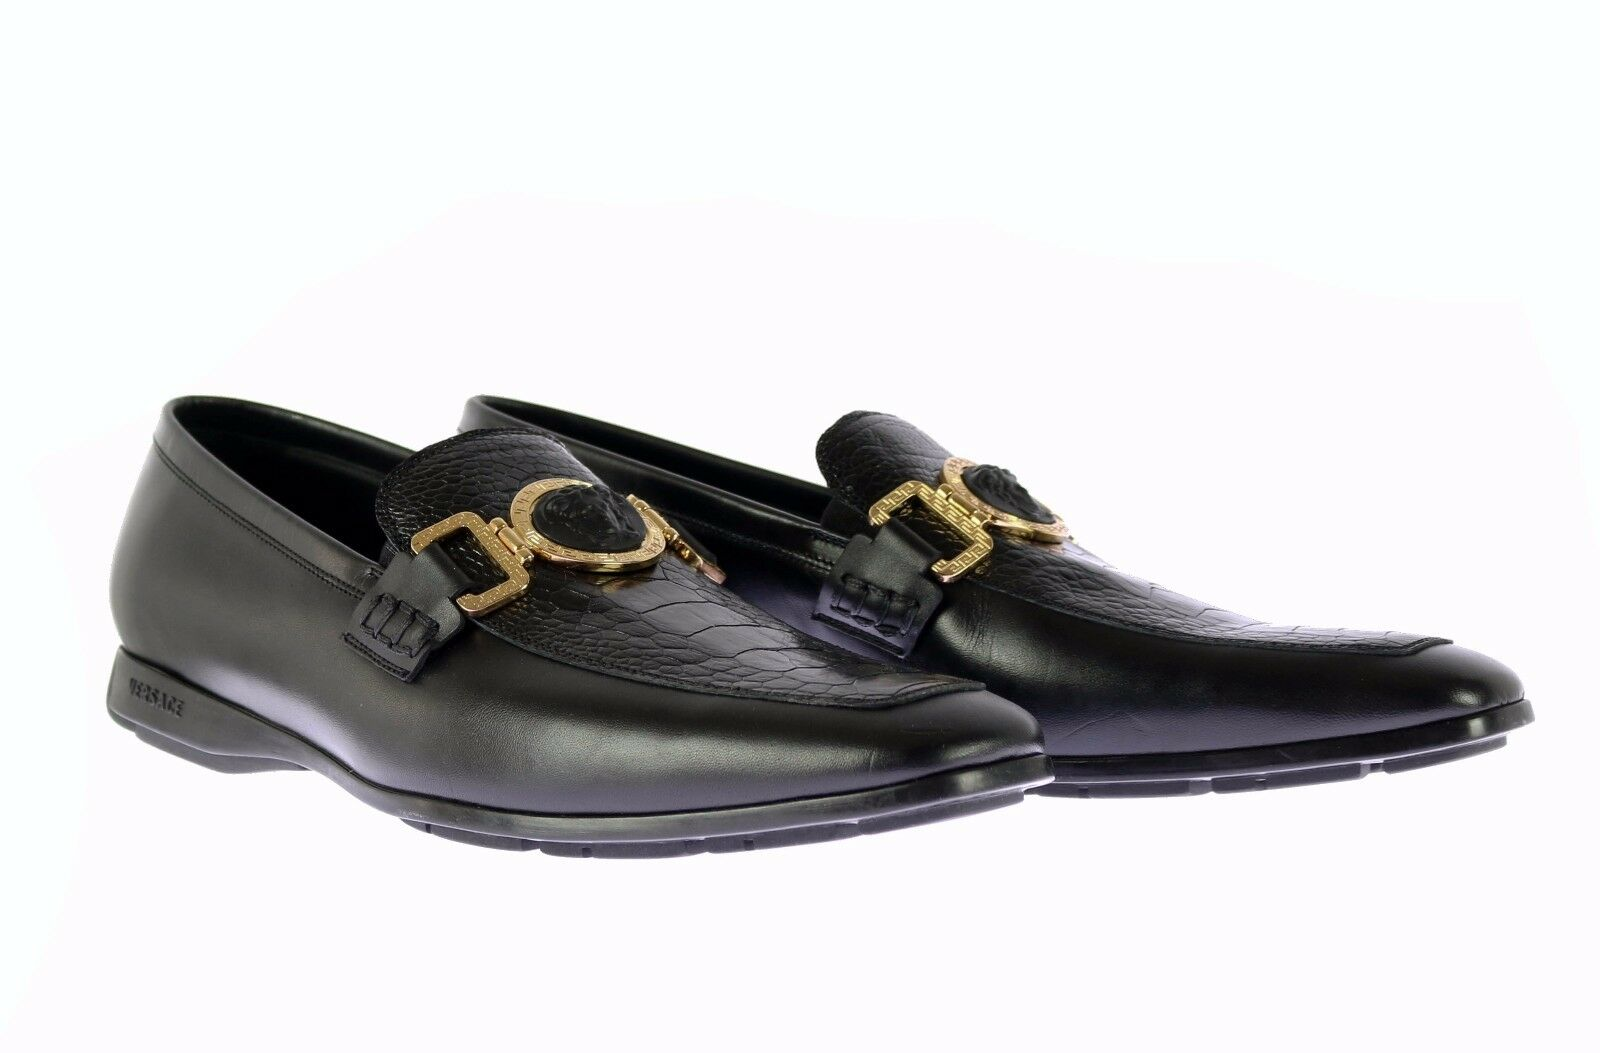 New Versace Black Ostrich Ostrich Ostrich and Leather City Loafers shoes 39.5 - 6.5 becc53